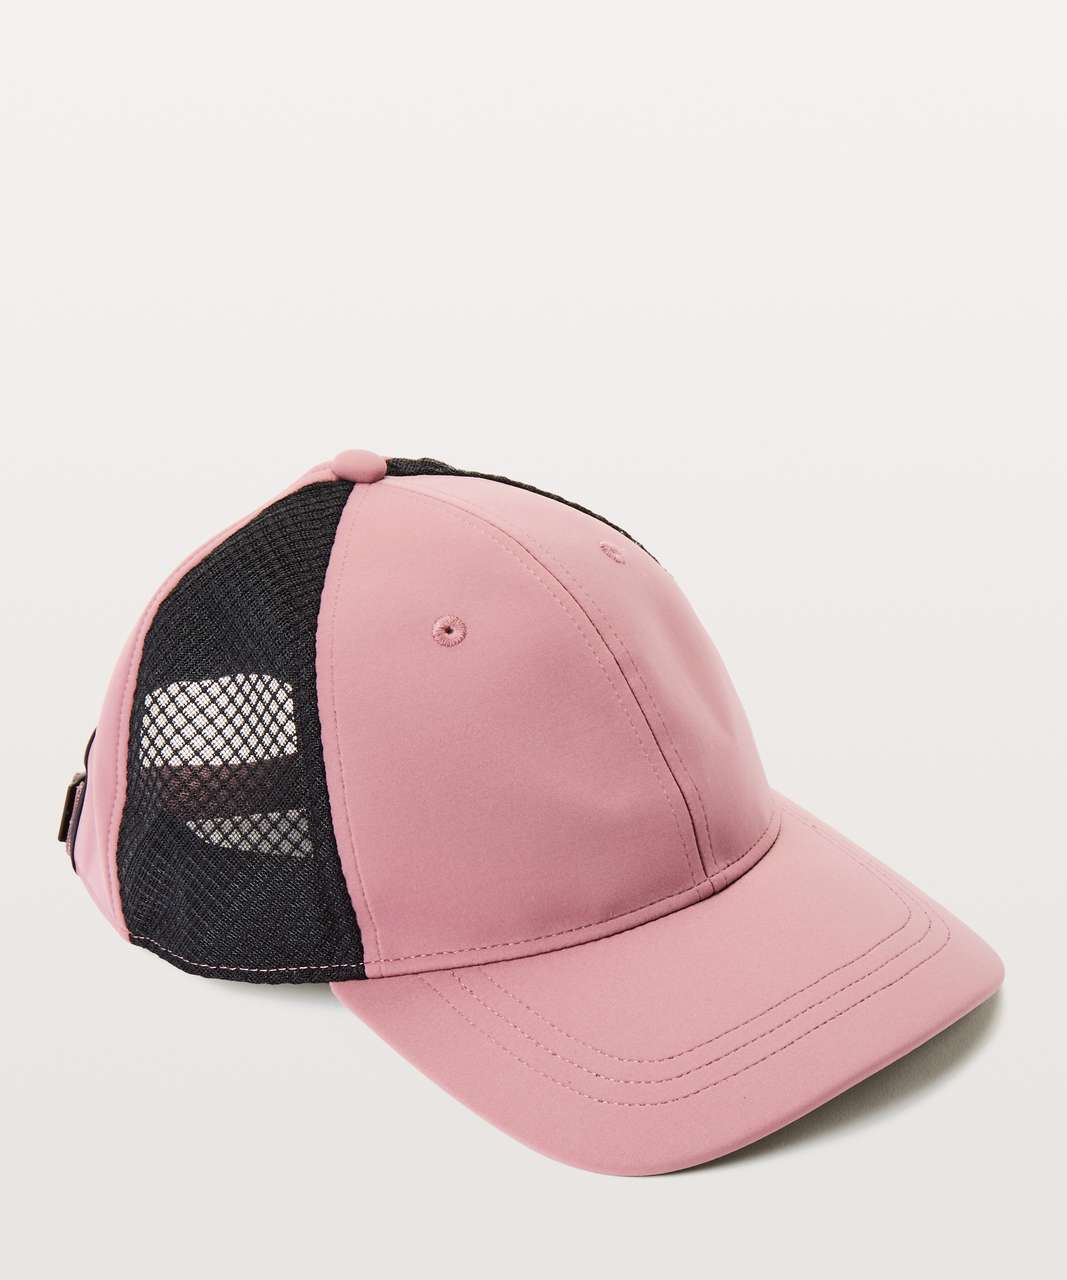 Lululemon Baller Hat *Meshed Up - Figue / Black